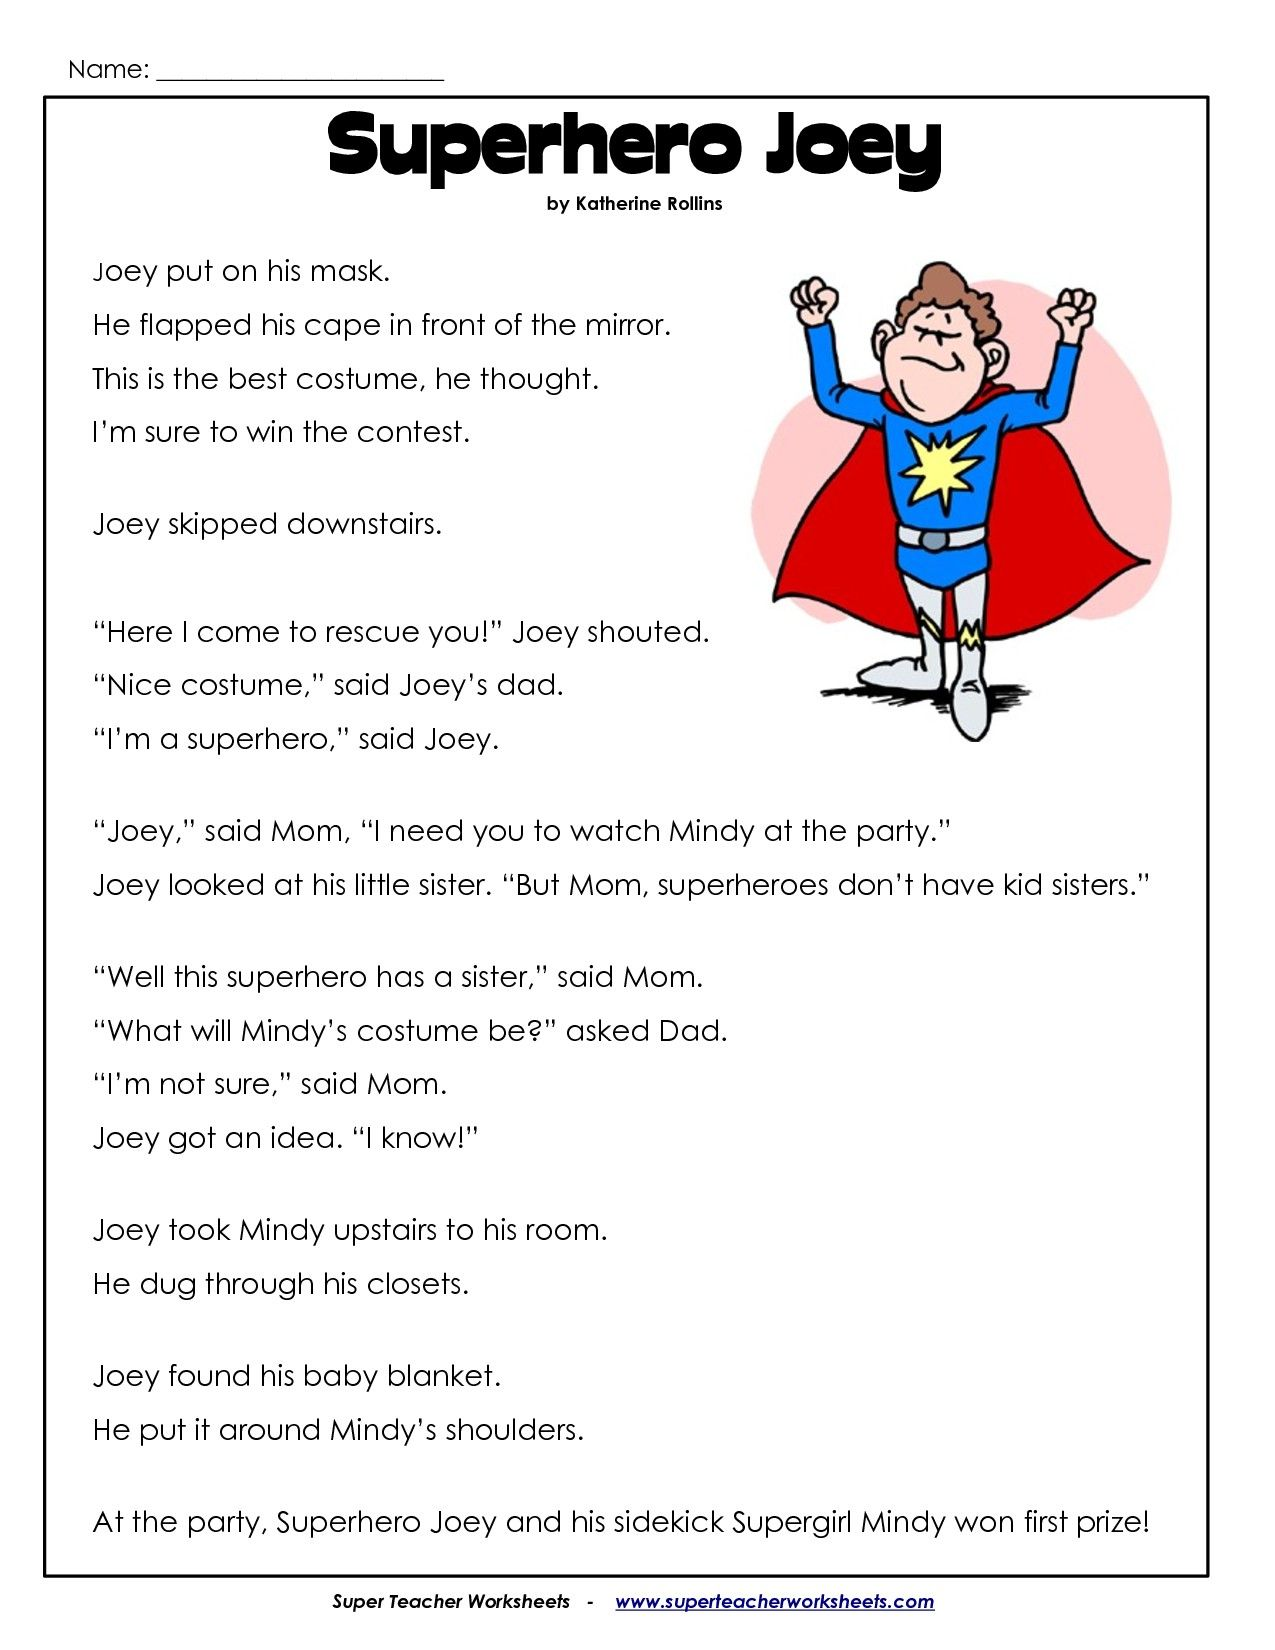 Free Worksheet Free Printable Reading Comprehension Worksheets For 3rd Grade 2nd grade reading comprehension blizzard bags pinterest worksheets pdf